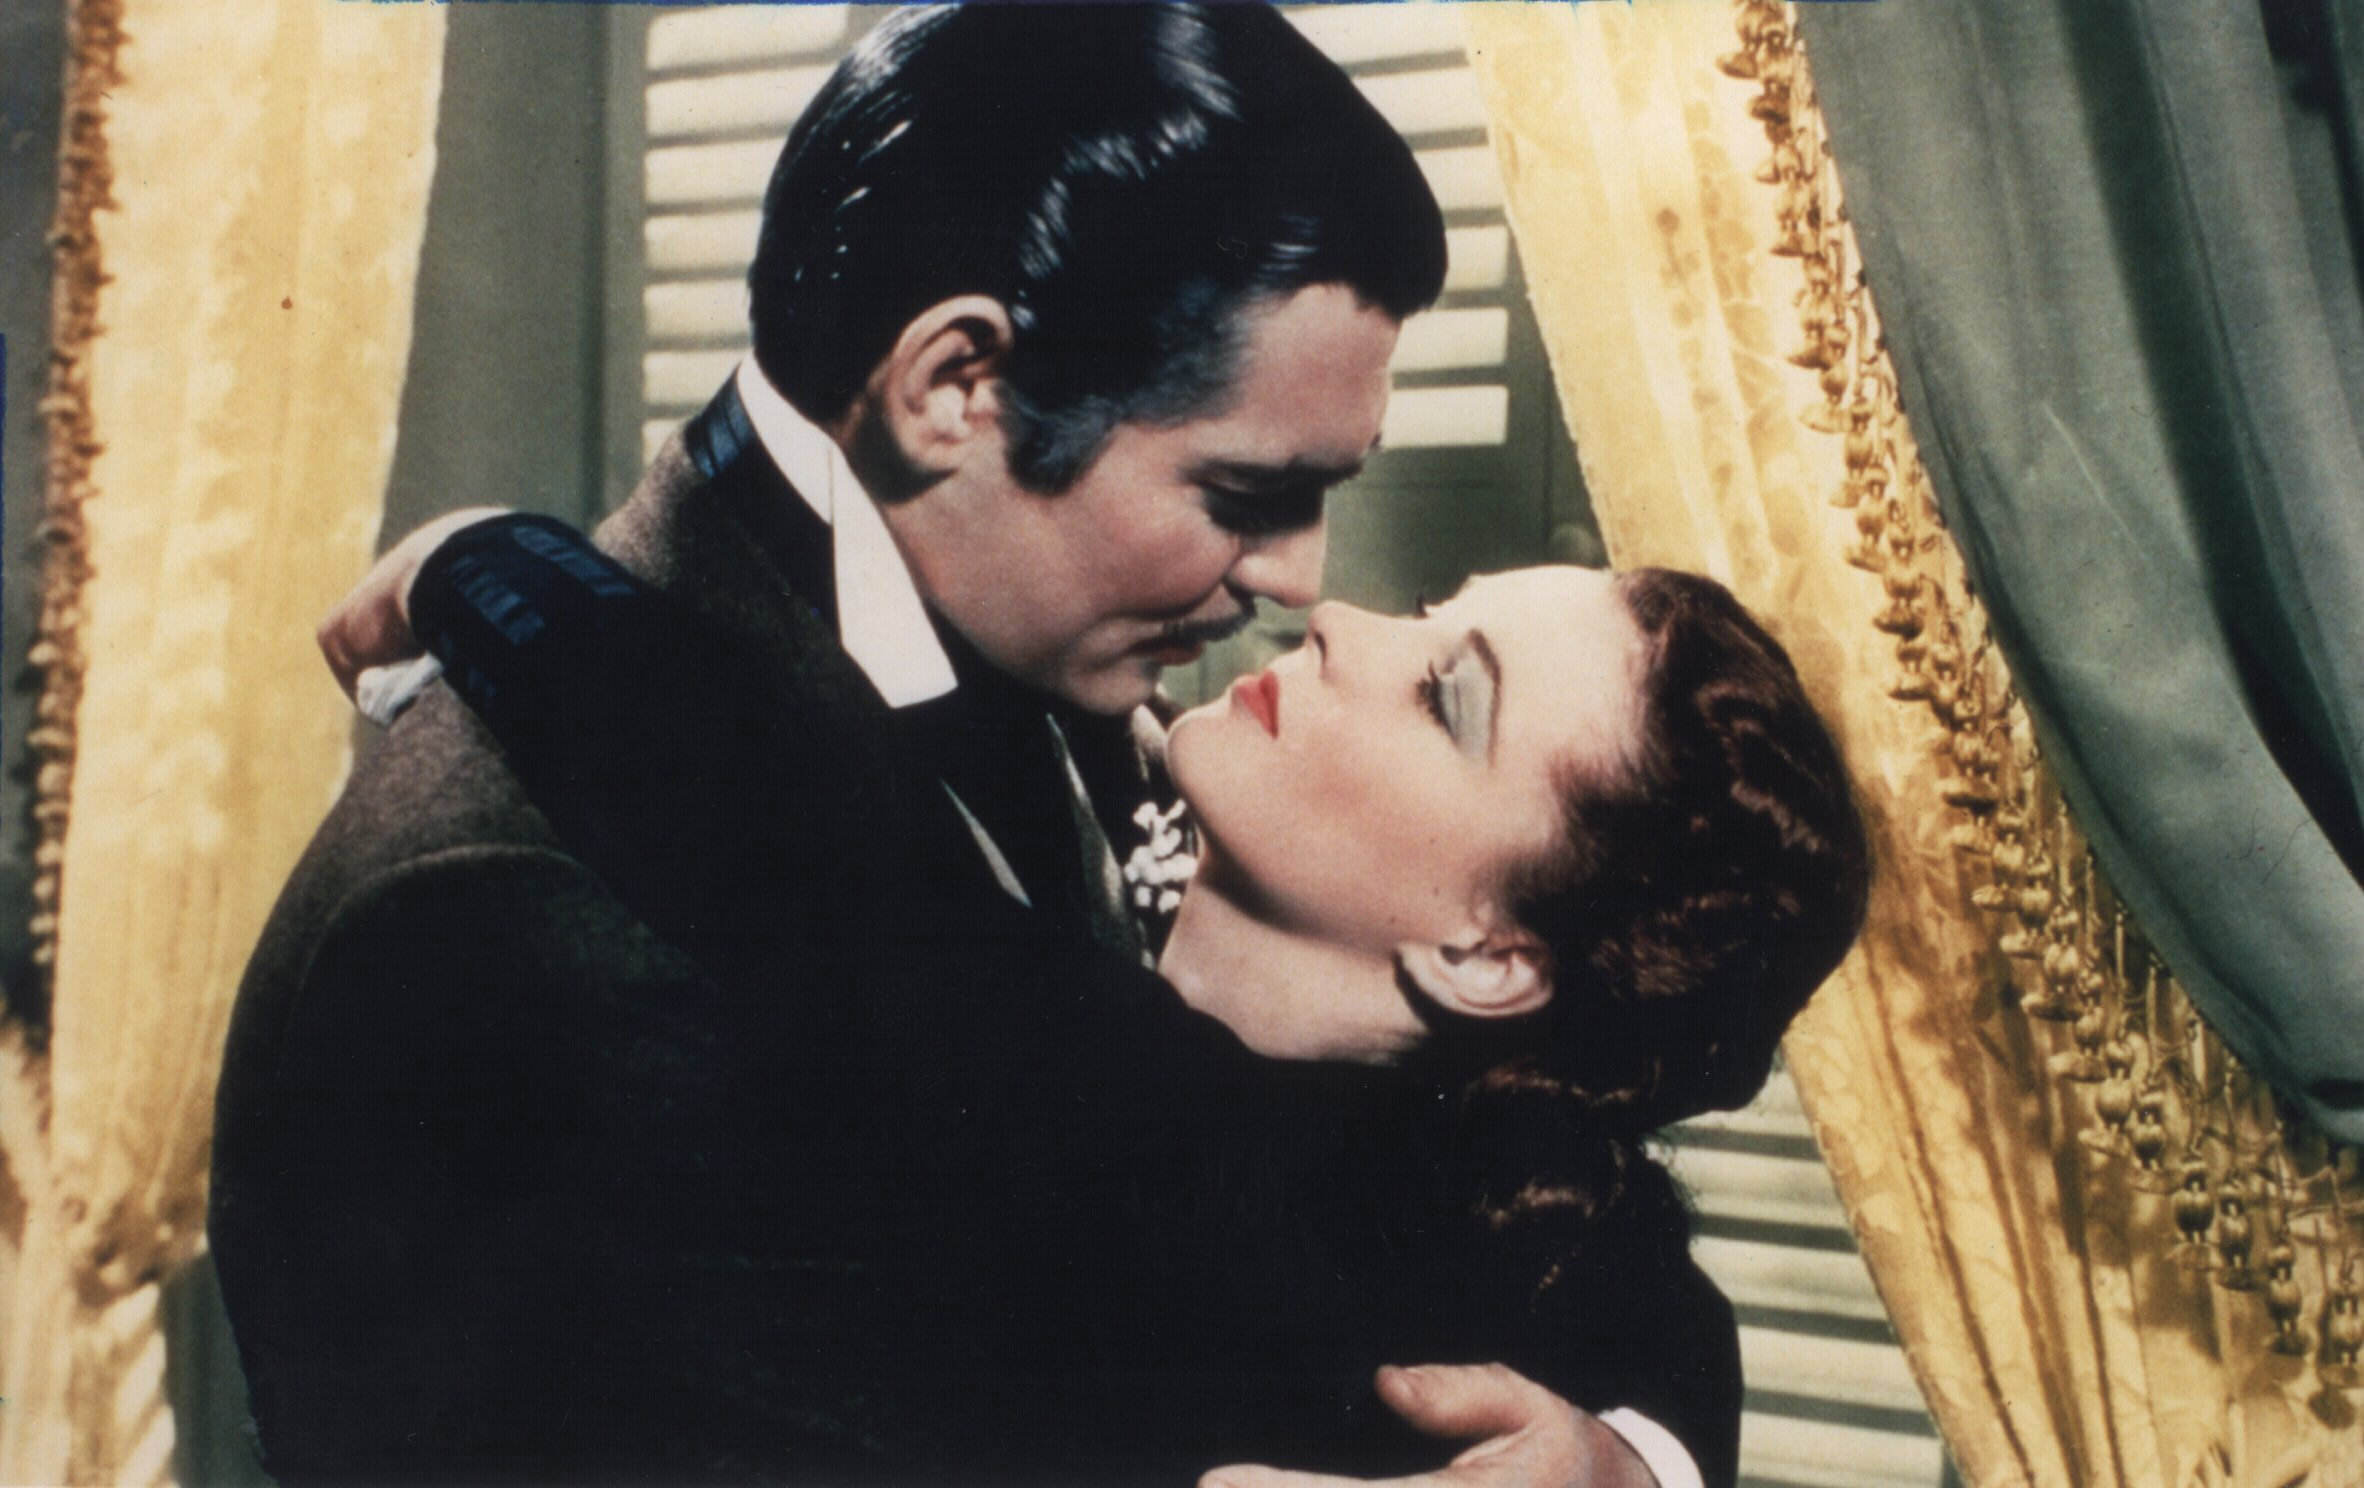 CLARK GABLE AND VIVIEN LEIGH IN GONE WITH WITH THE WIND FROM 1939